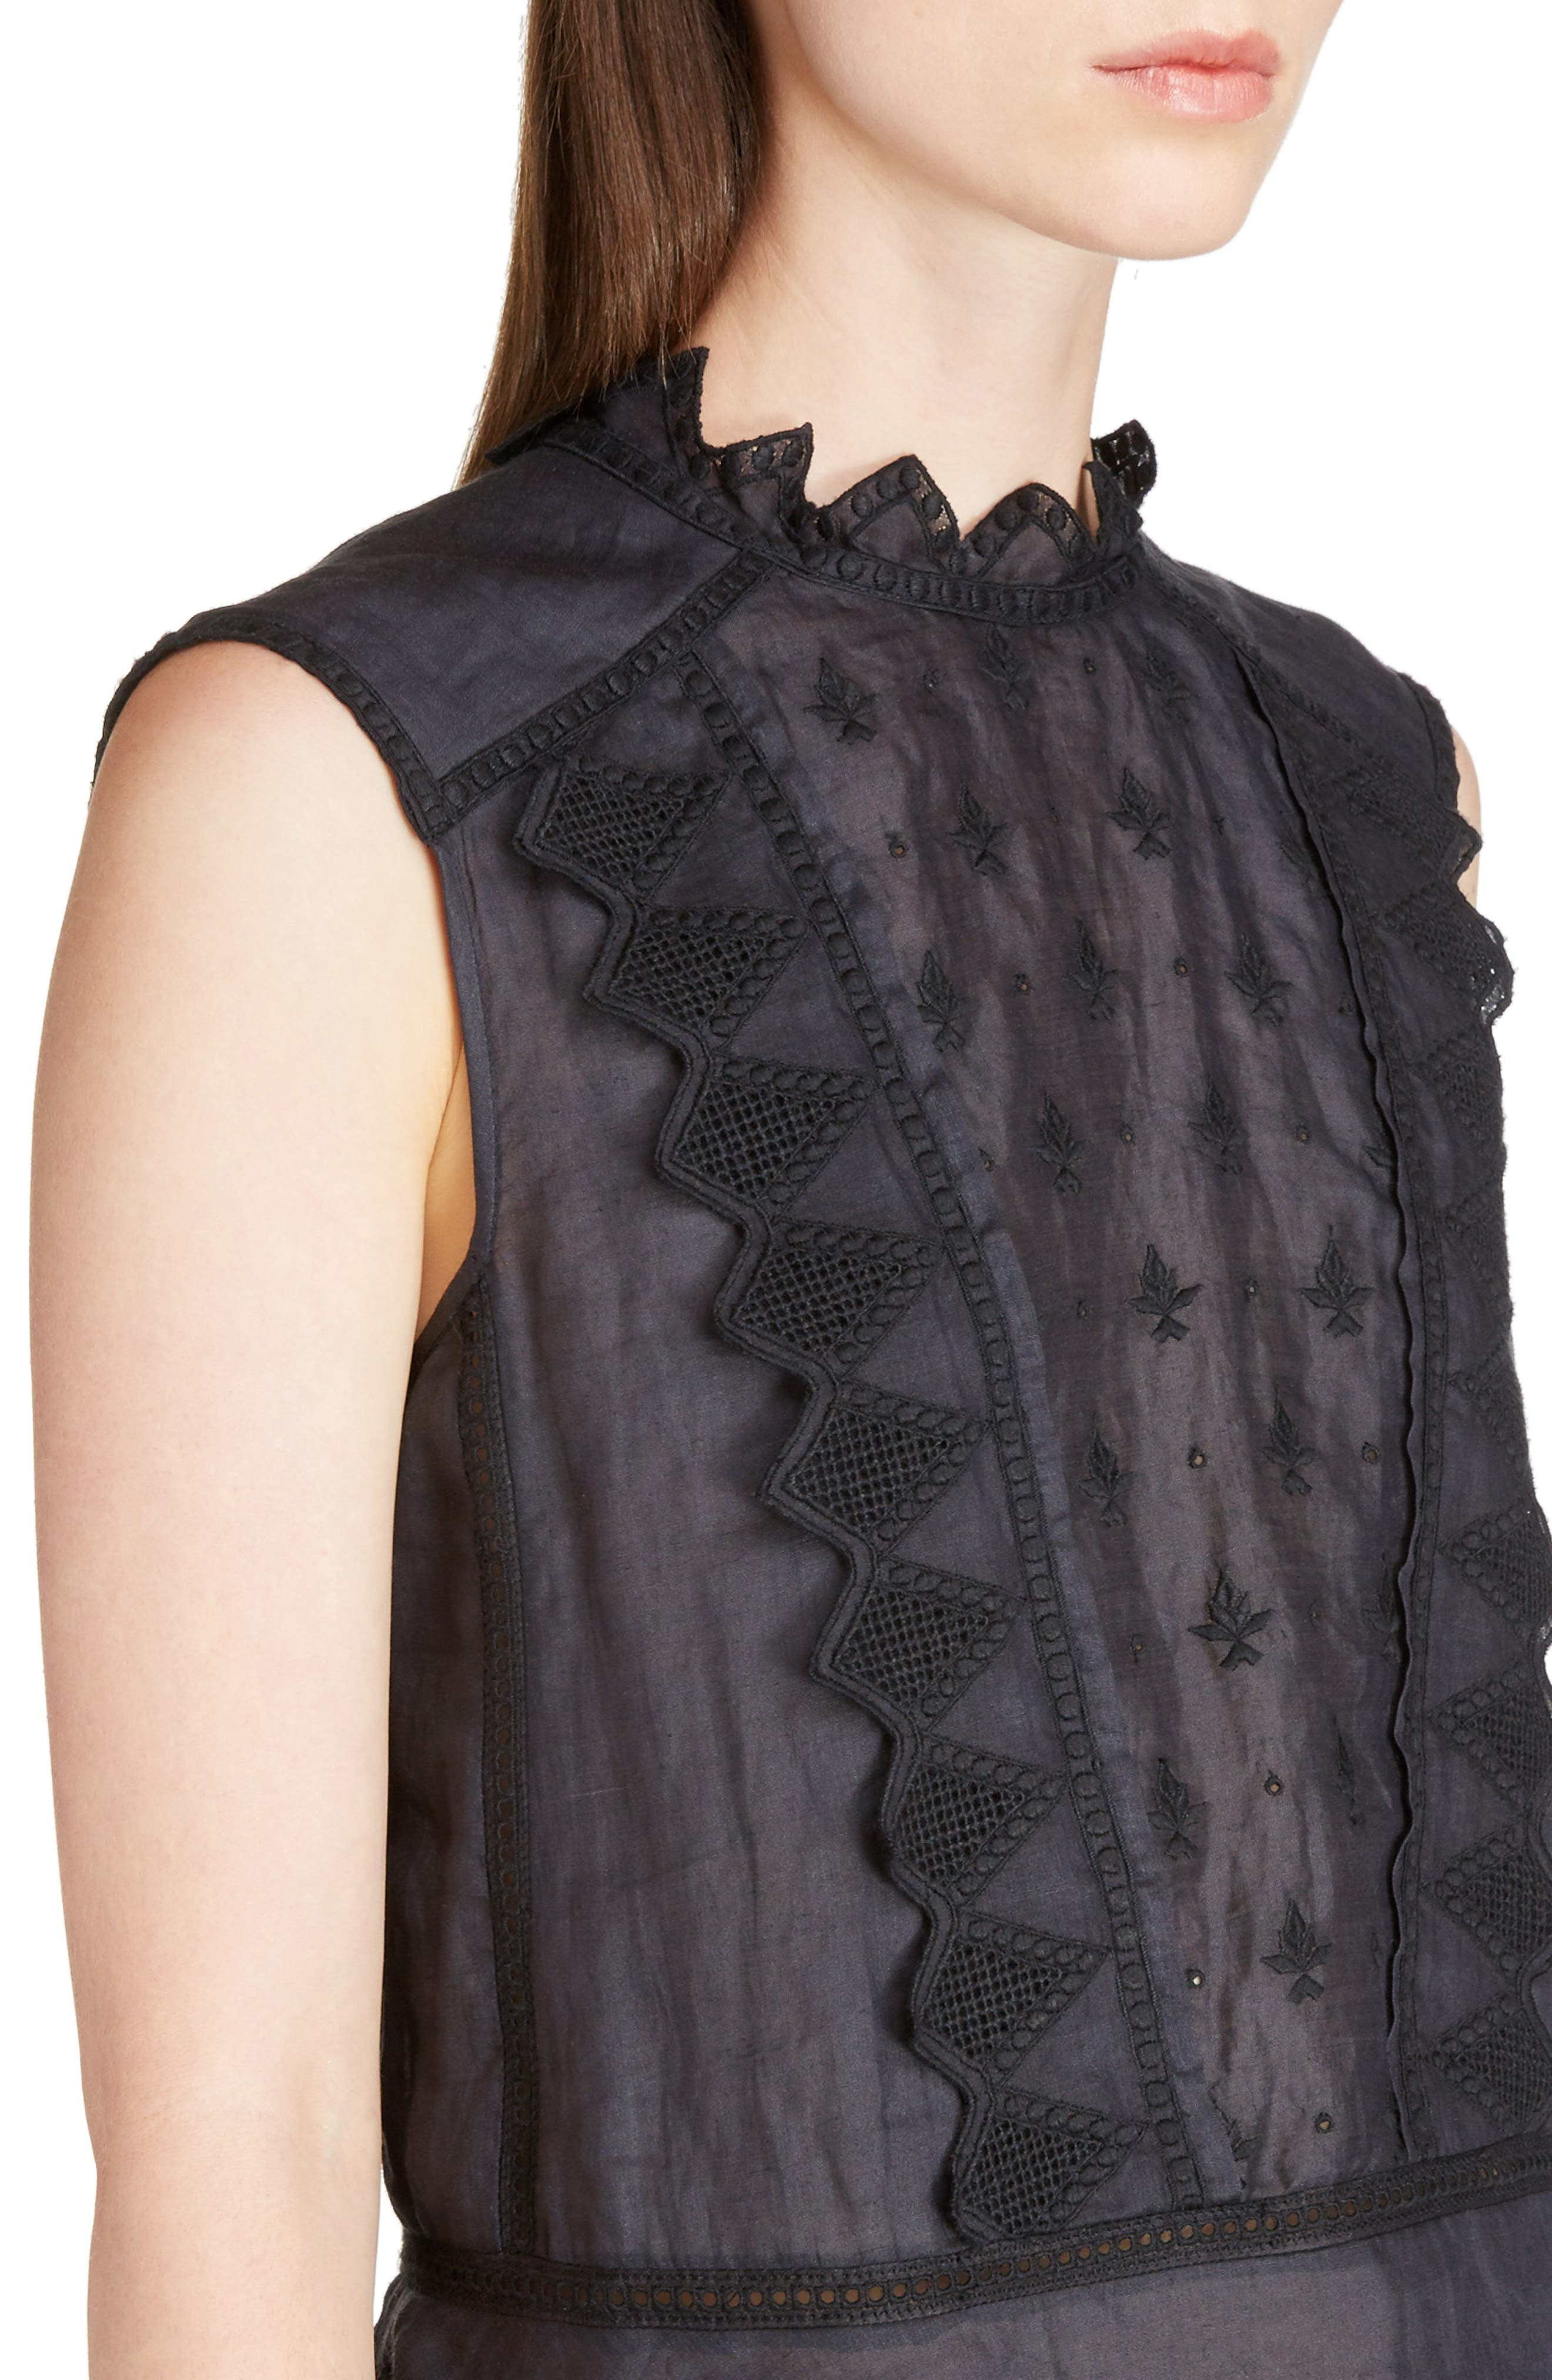 Nust Embroidered Top,                             Alternate thumbnail 4, color,                             001